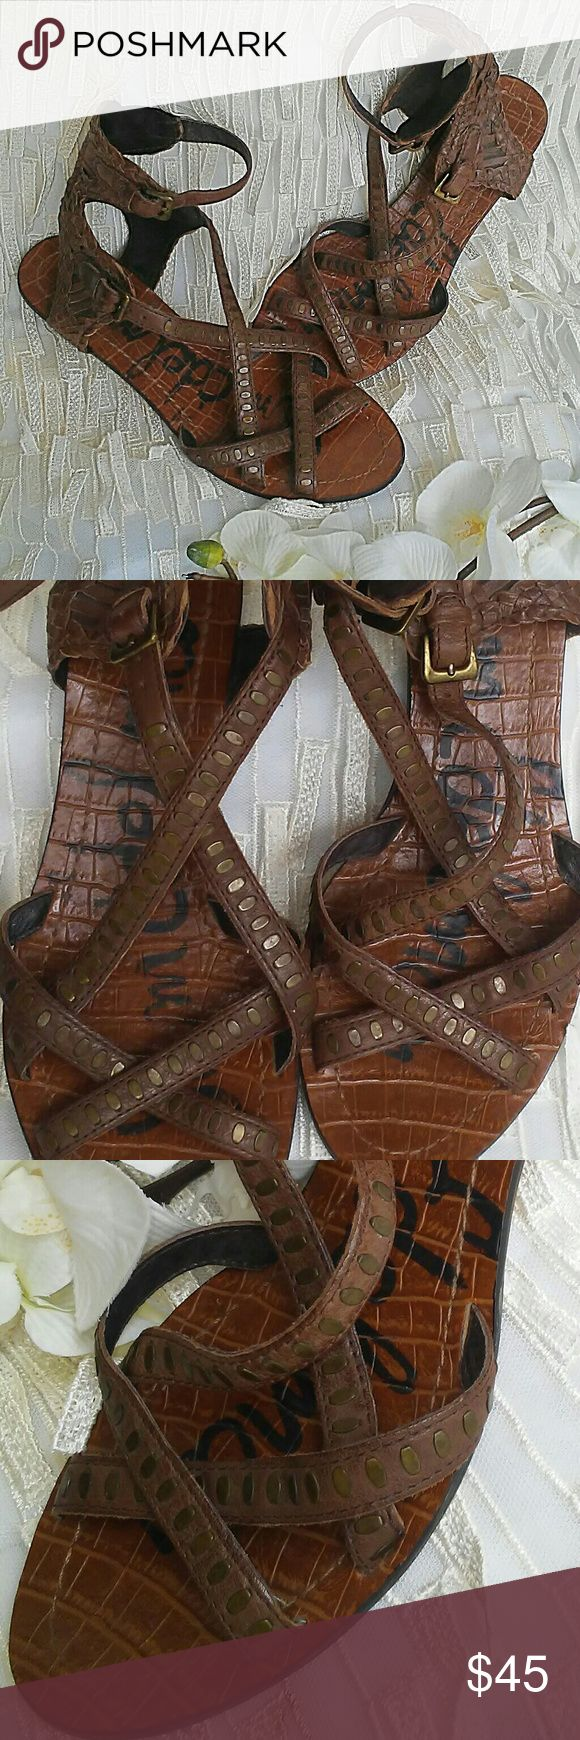 Sam Edleman Gladiator Sandals Beautiful and unique Sam Edleman sandals. Woven rich brown leather with bronze studs and two ankle buckles. Size 7  Great condition (as seen in photos) Fantastic quality and chic style!!!! Sam Edelman Shoes Sandals